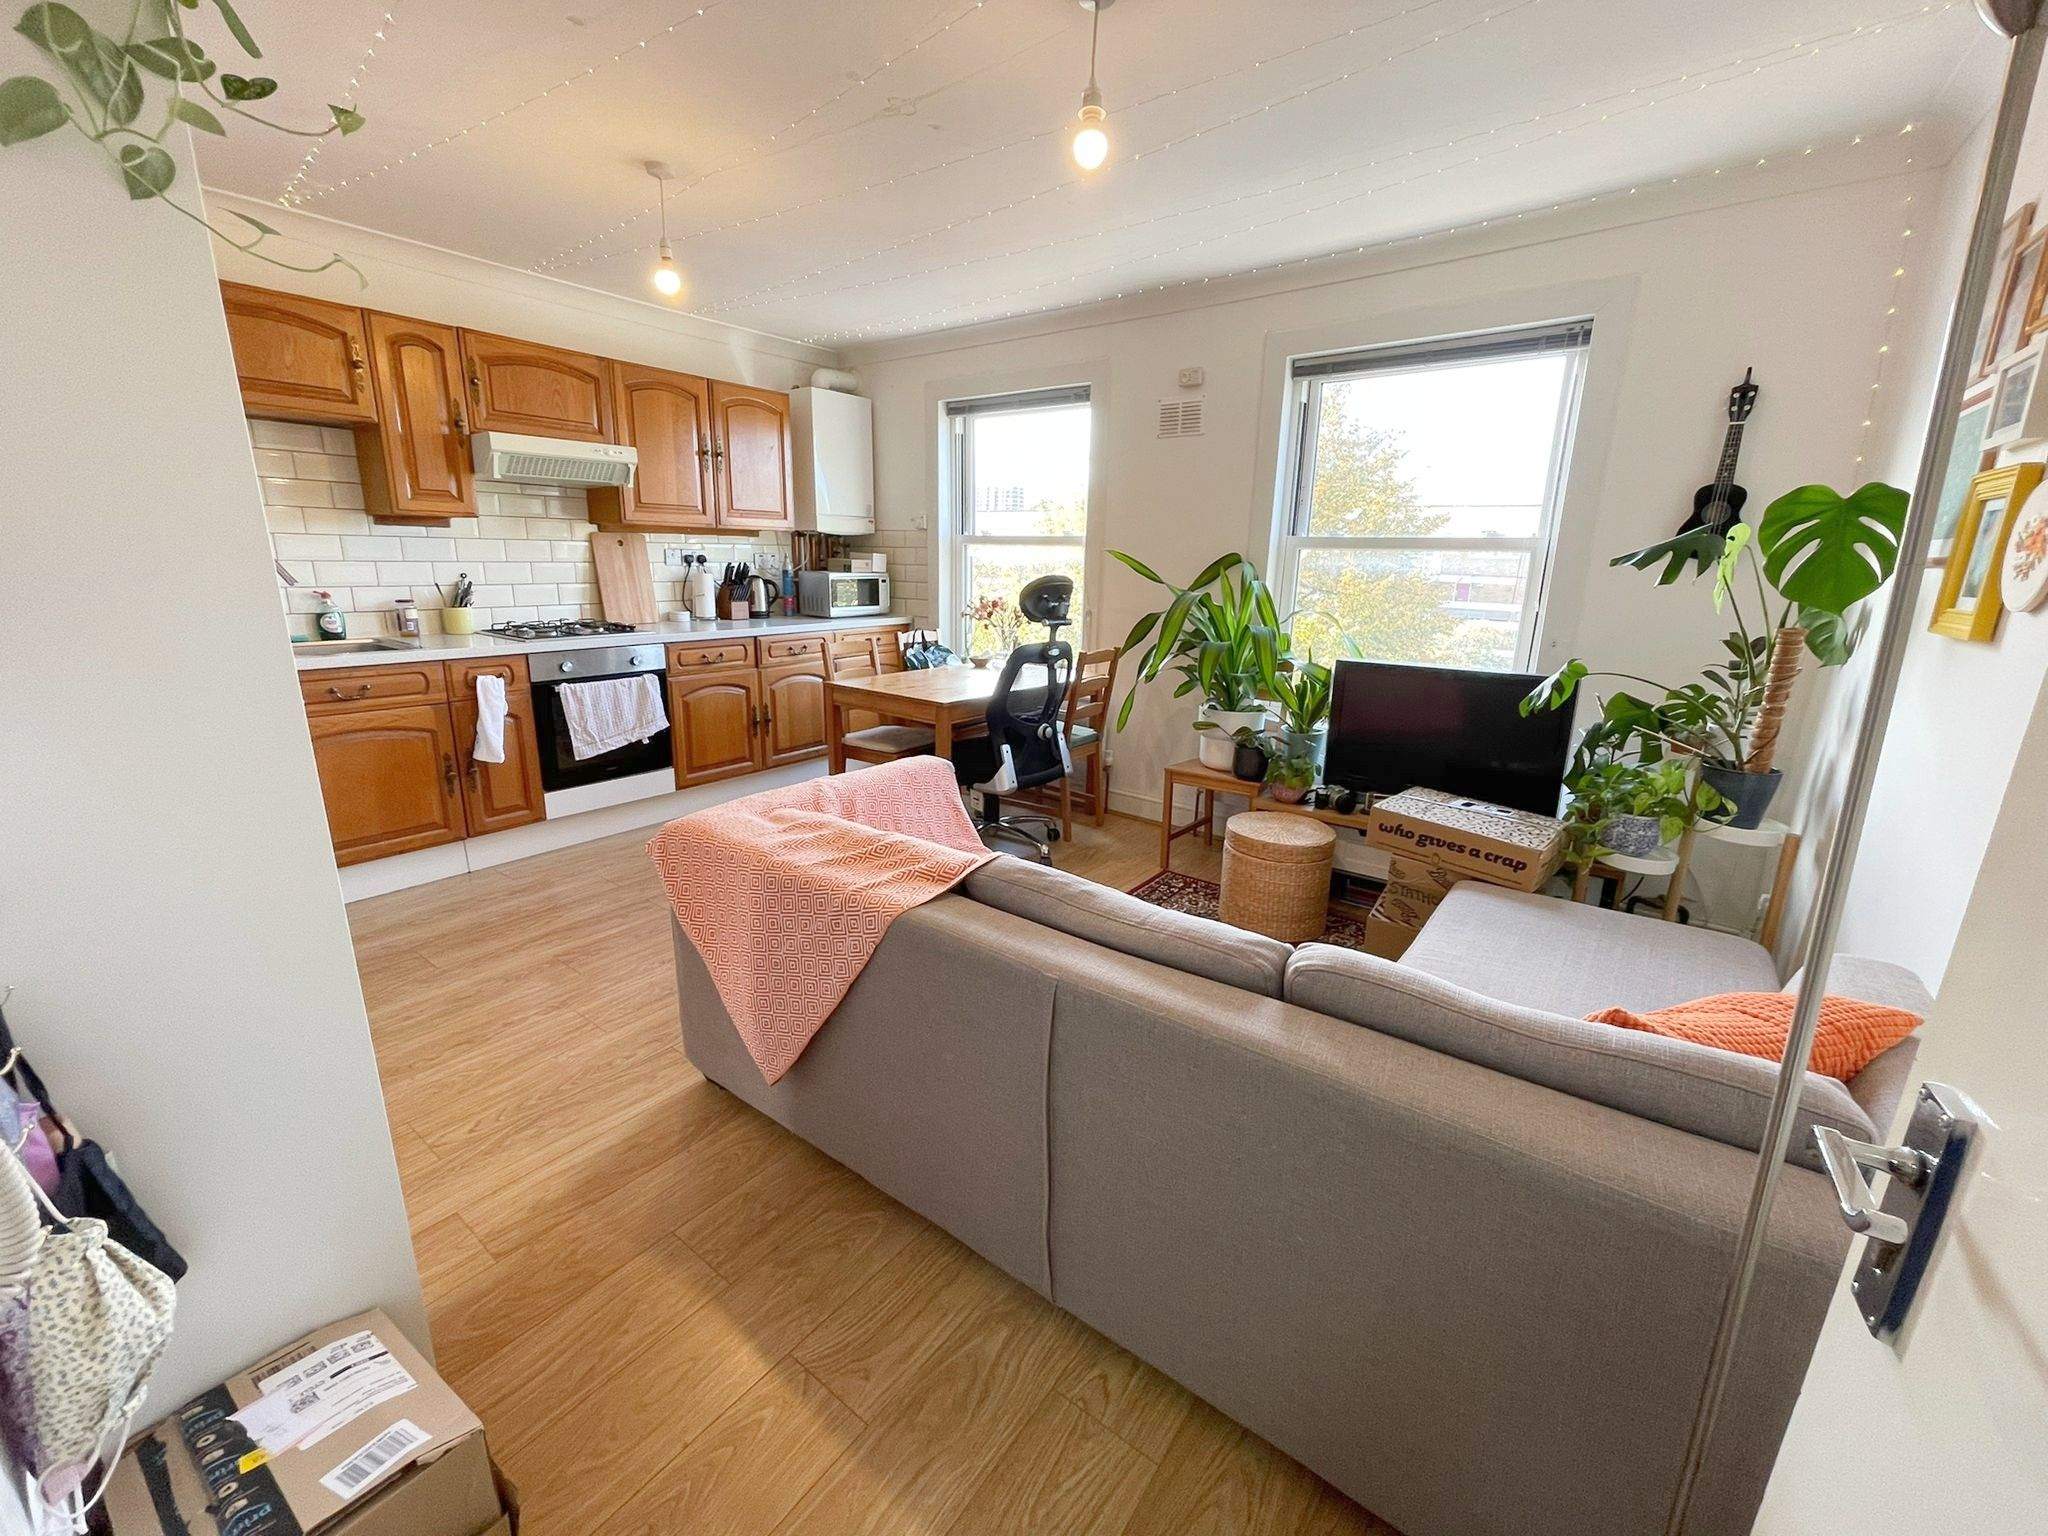 Property photo 1 of 6. Open Plan Living Room/Kitchen